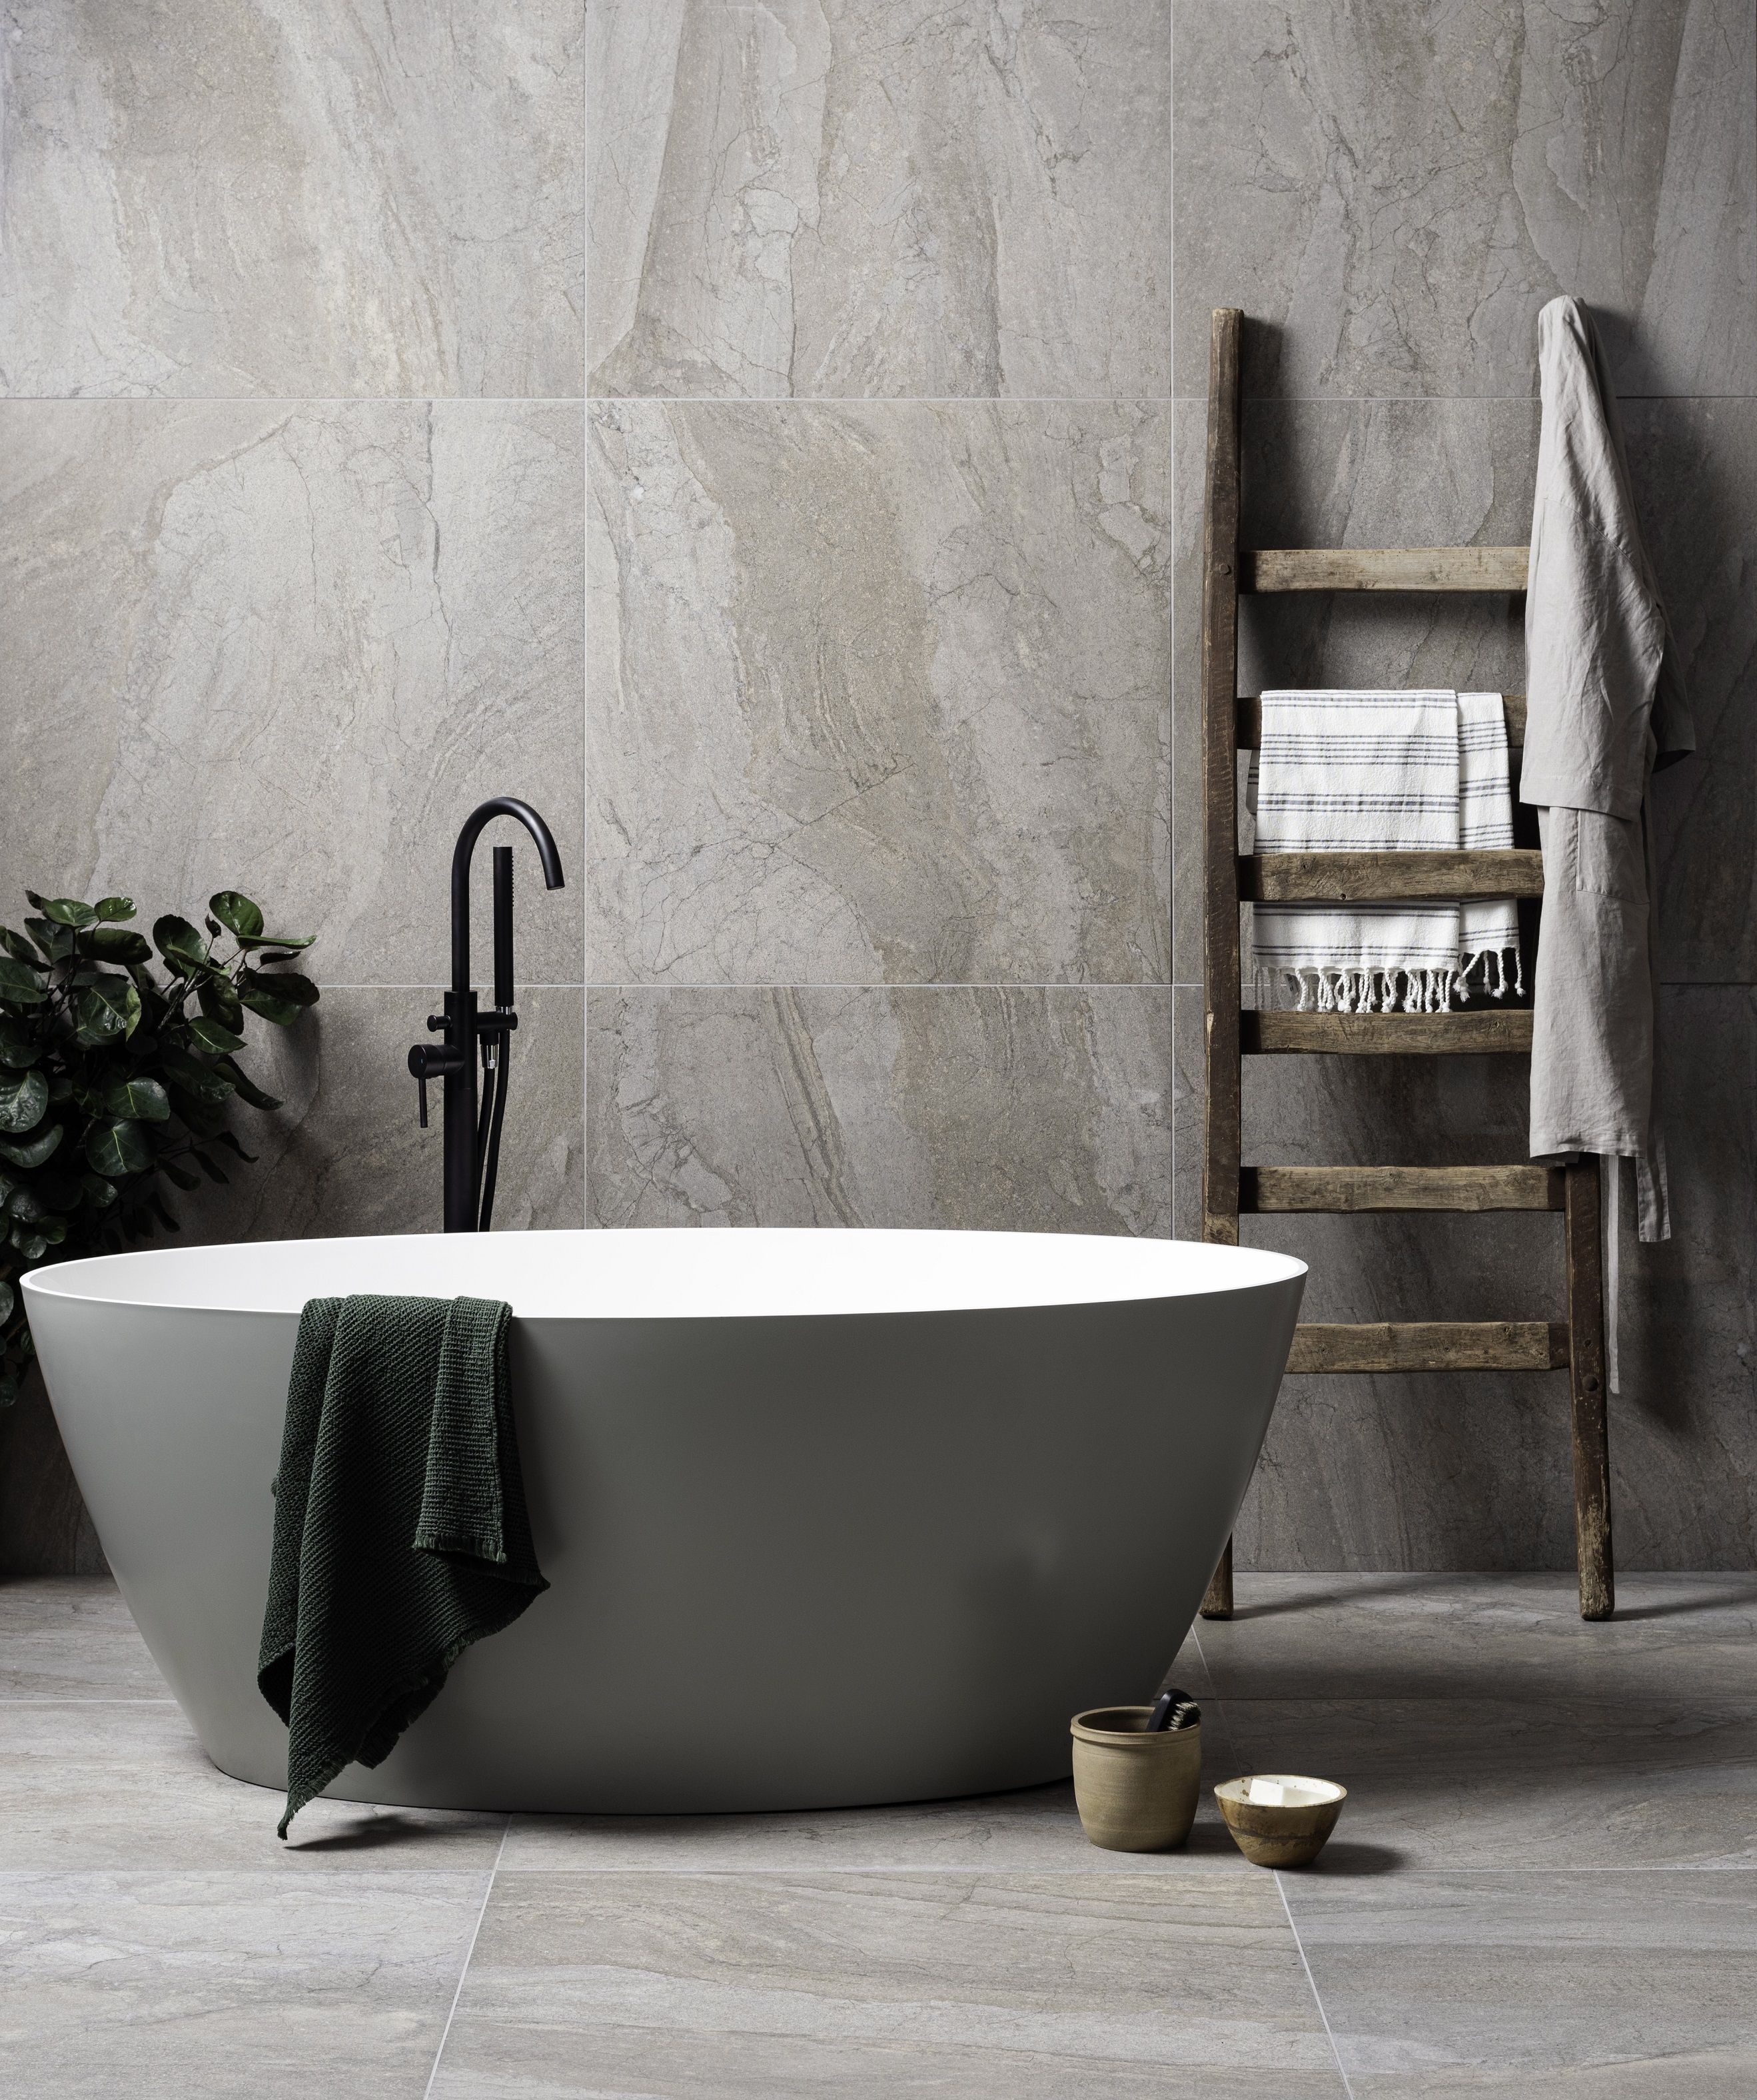 Mediterraneo Tiles From Original Style Natural Stone Tile Bathroom Bathroom Wall Tile Stone Tile Bathroom